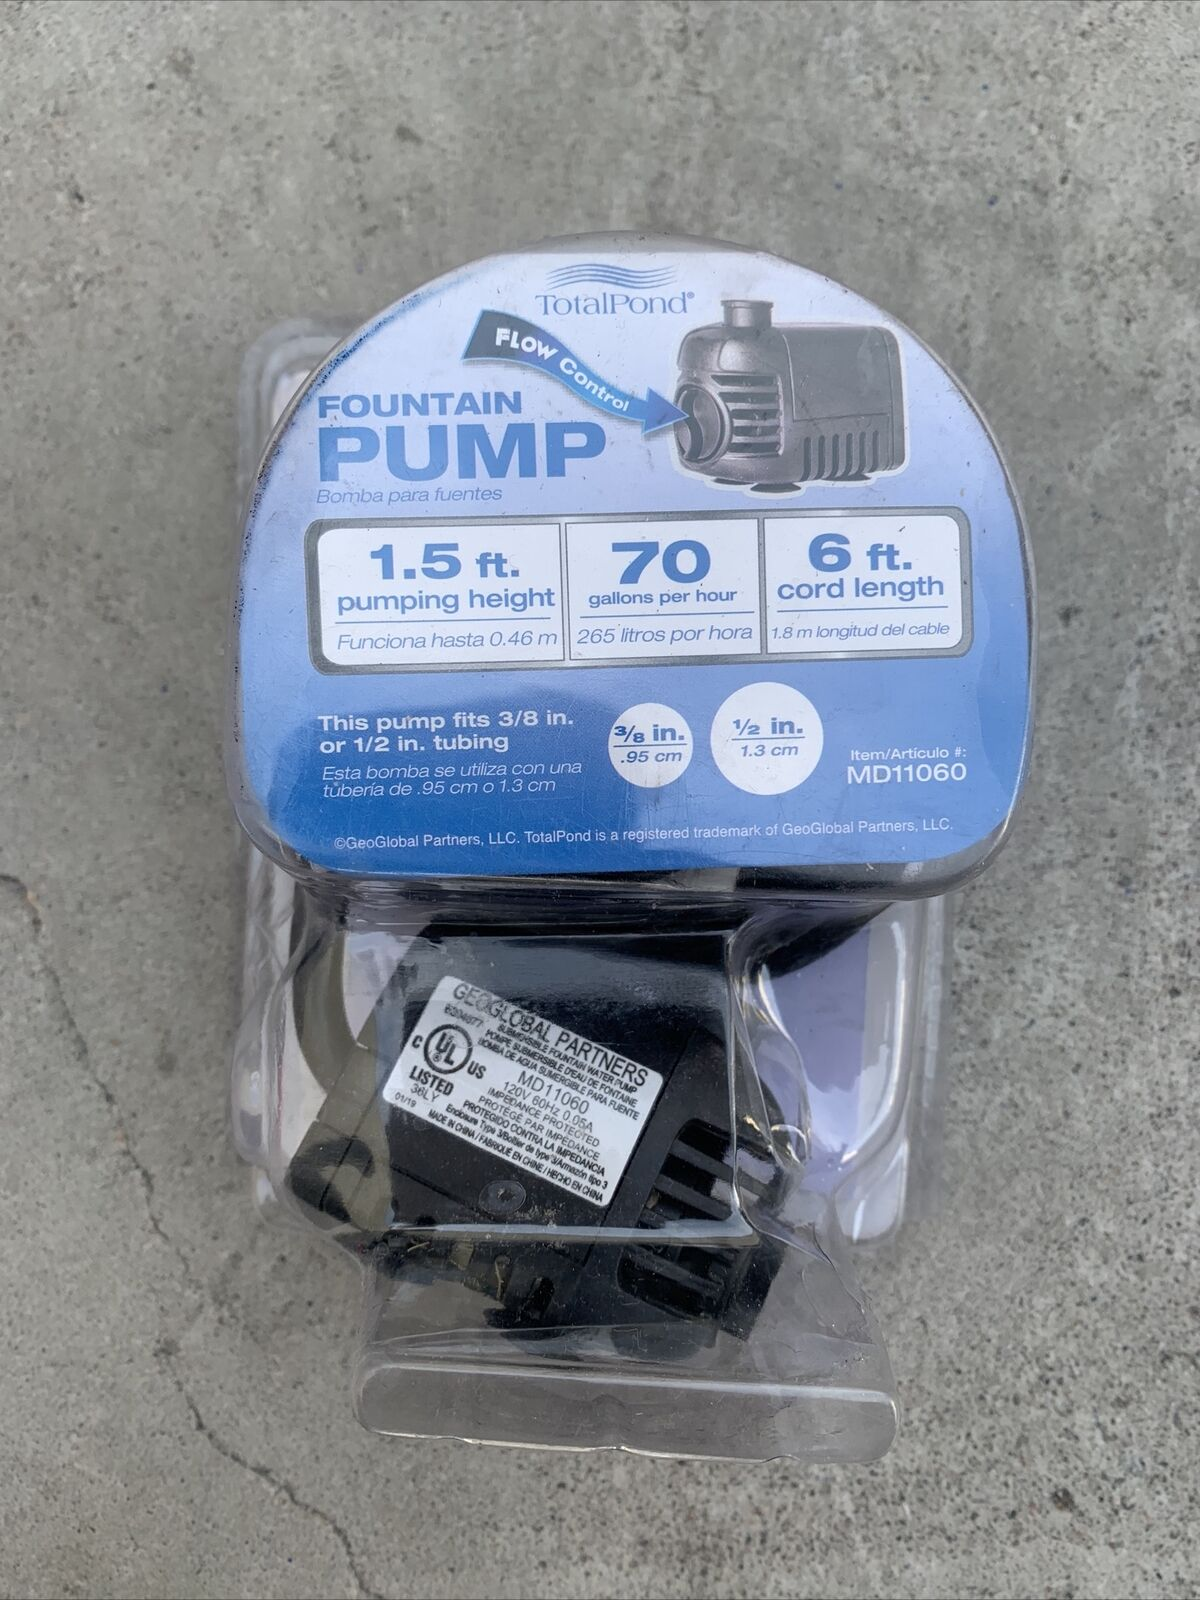 Geoglobal Partners Submersible Pump : geoglobal, partners, submersible, Total, Fountain, Online